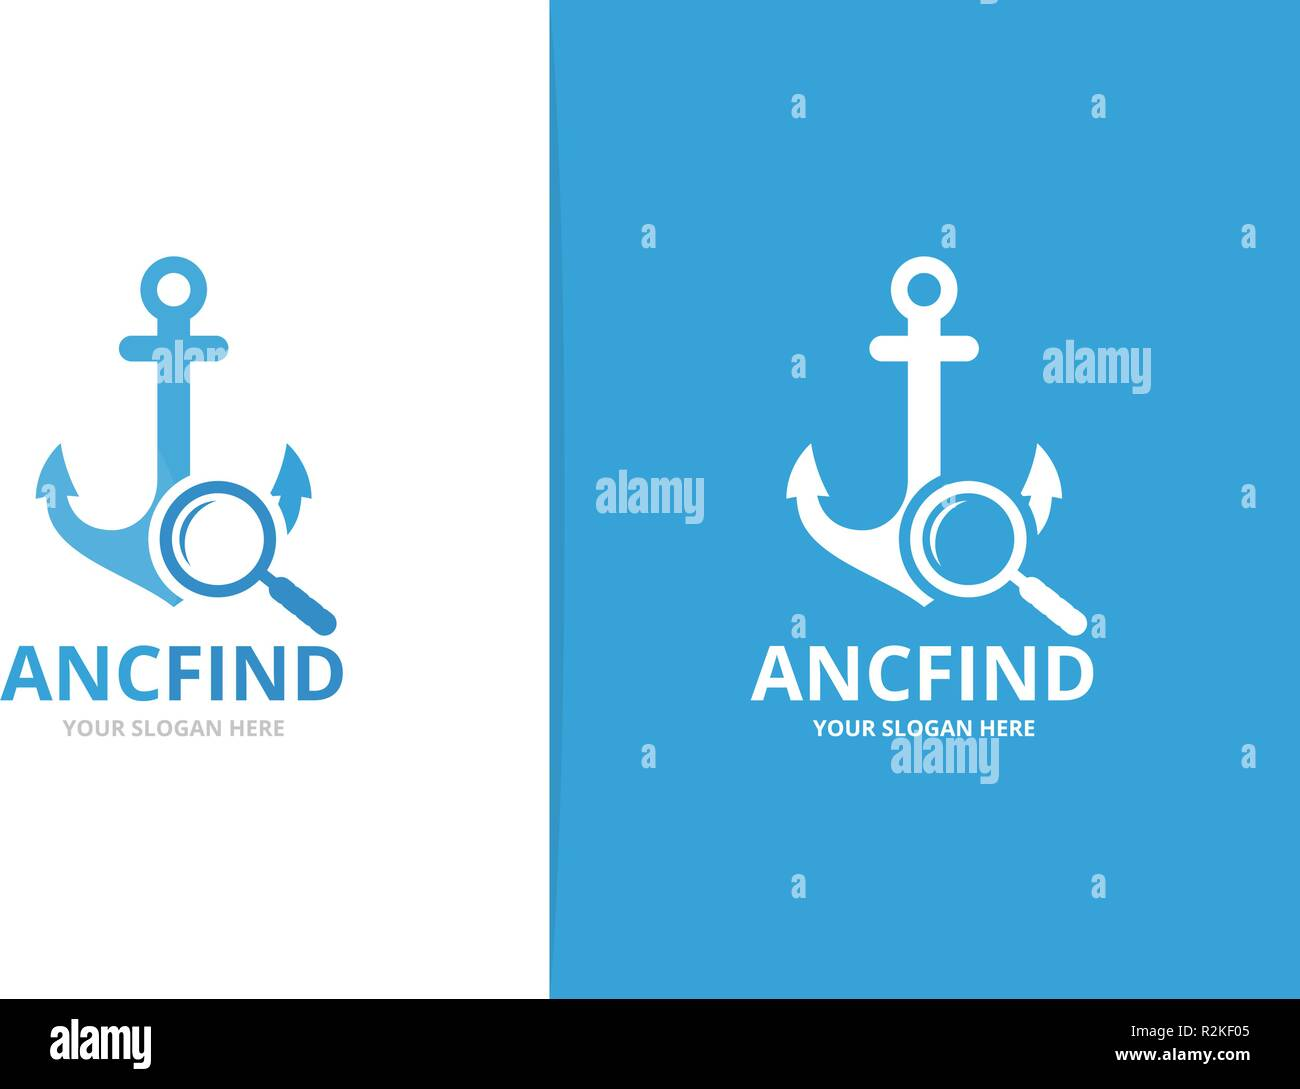 Vector anchor and loupe logo combination. Marine and magnifying symbol or icon. Unique navy and search logotype design template. - Stock Image